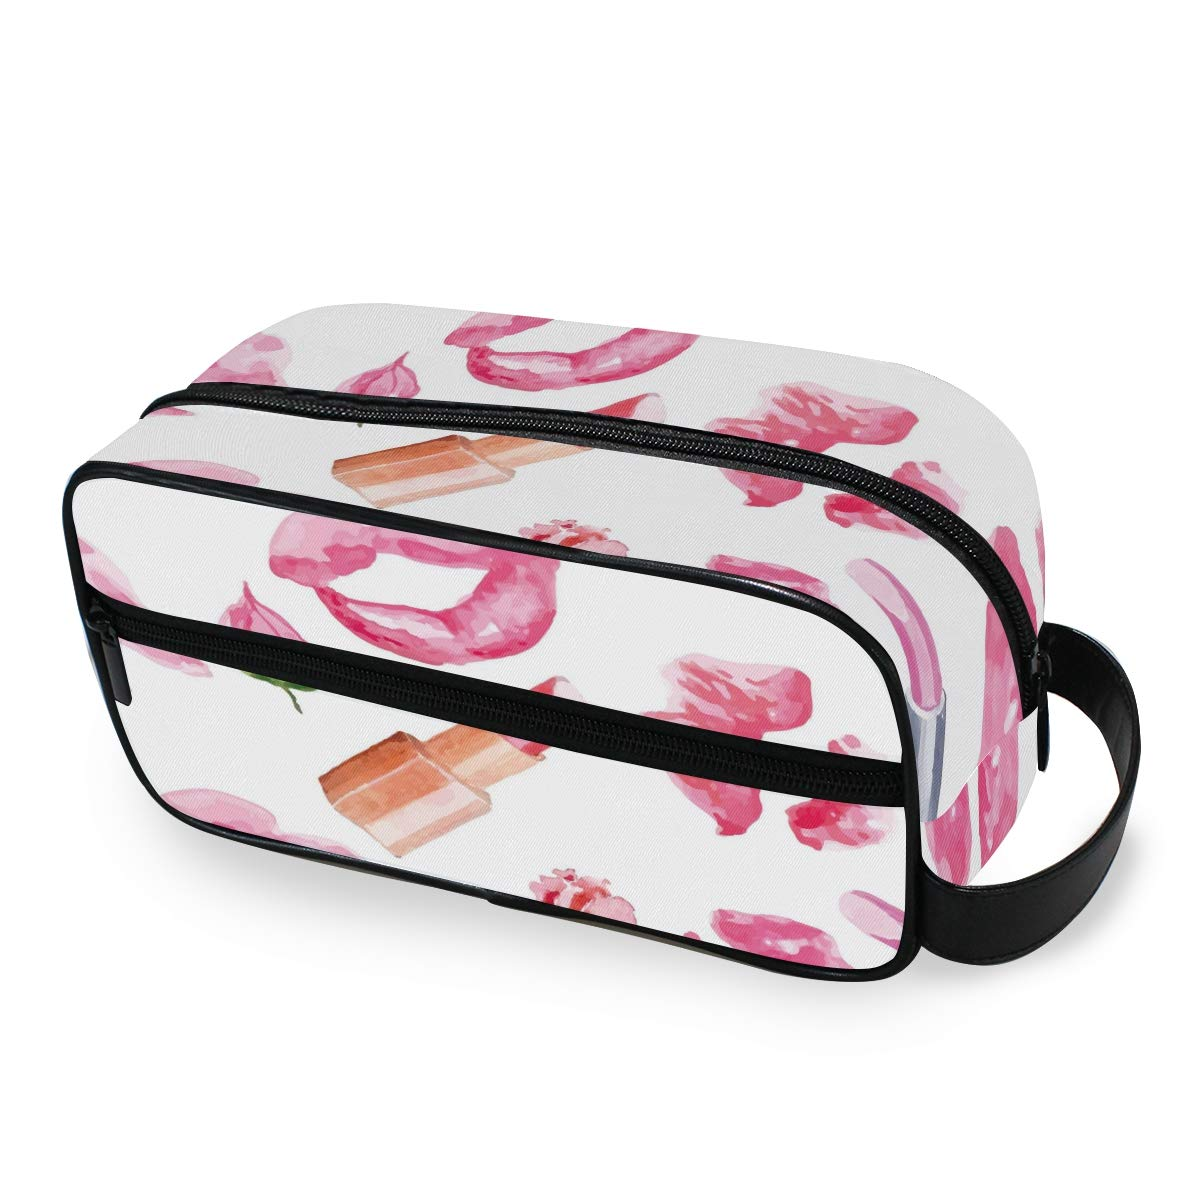 Makeup Bag Portable Travel Cosmetic Toiletry Bag Lipstick Kiss Prints Organizer Accessories Case Tools Case for Beauty Women